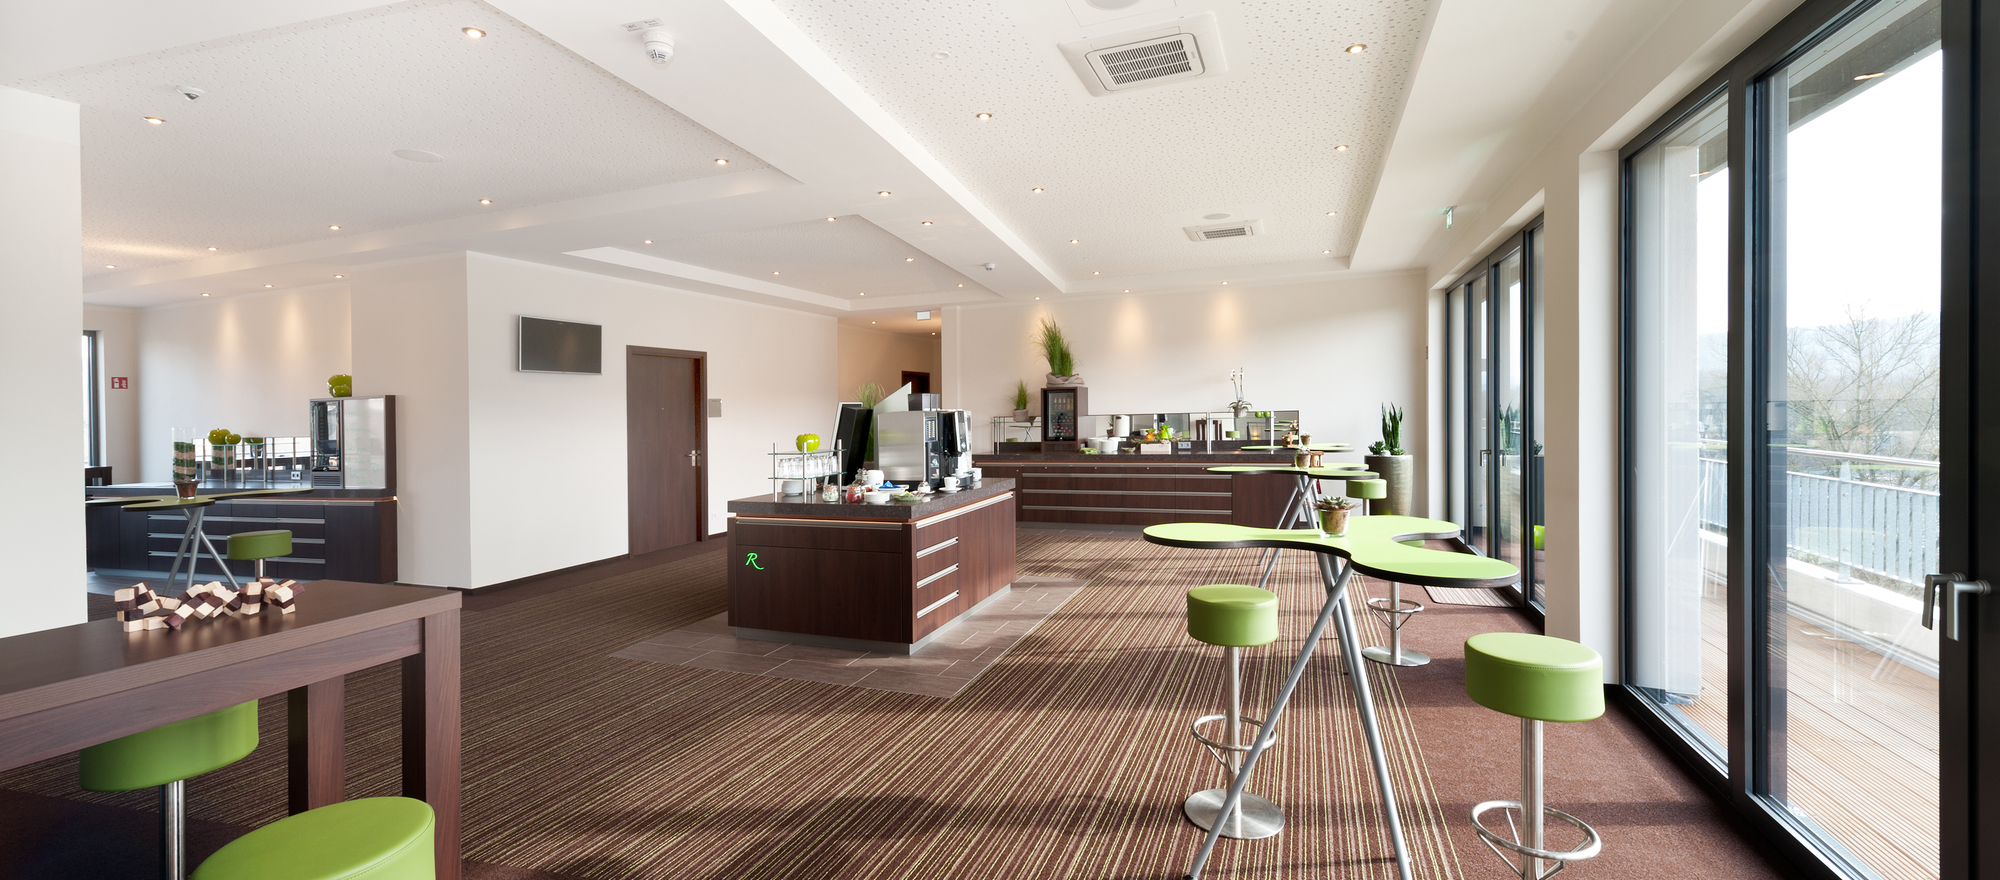 The all-round carefree package with comprehensive service for events offers the 4-star hotel Ringhotel Zweibruecker Hof in Herdecke